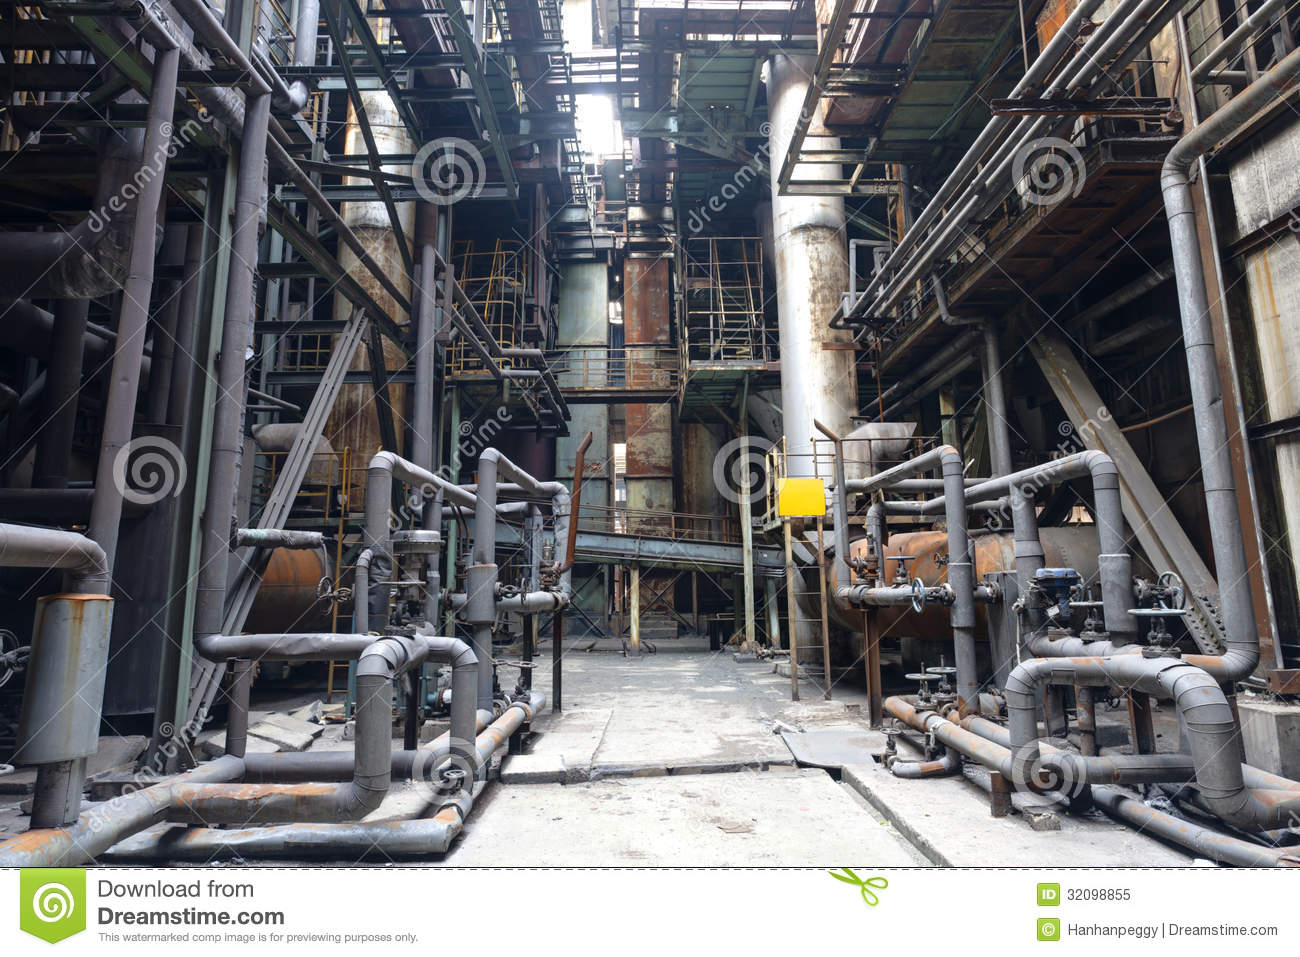 steel-mill-interior-pipes-valves-32098855.jpg